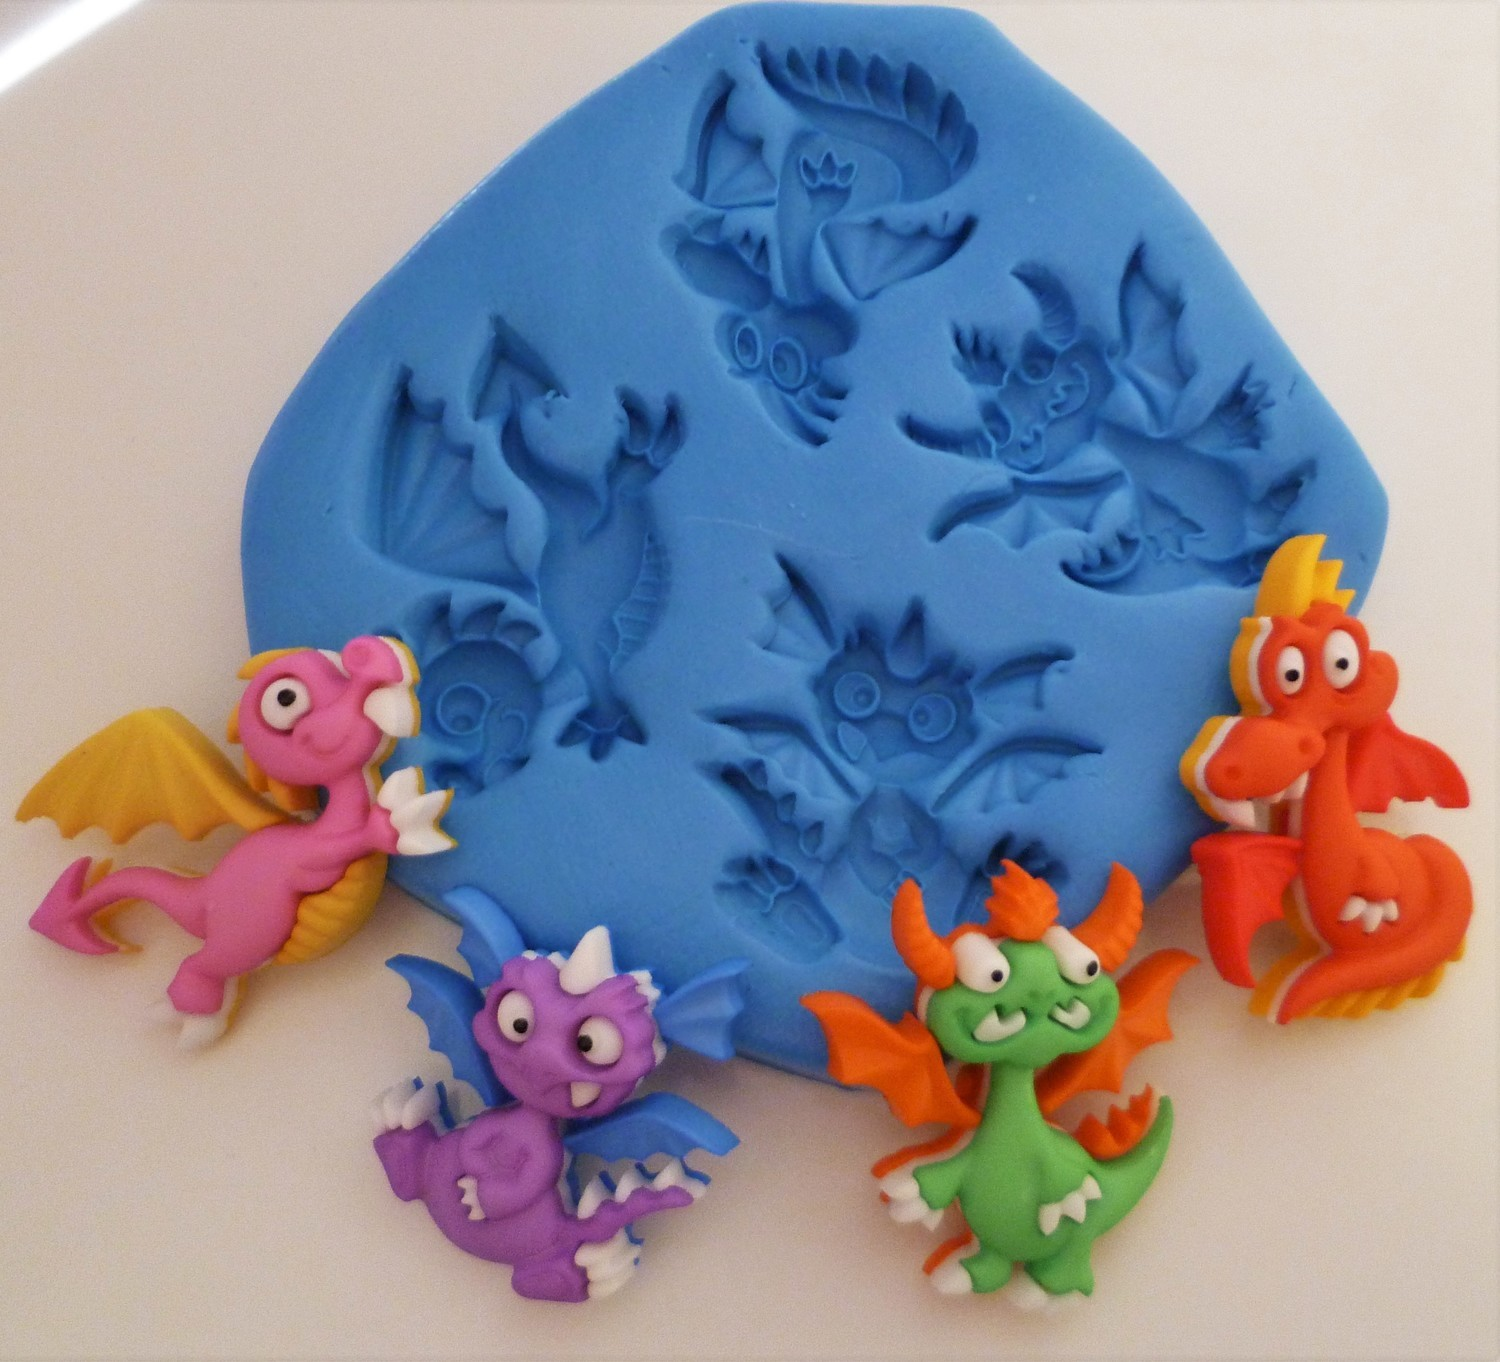 DRAGONS SILICONE MOULD